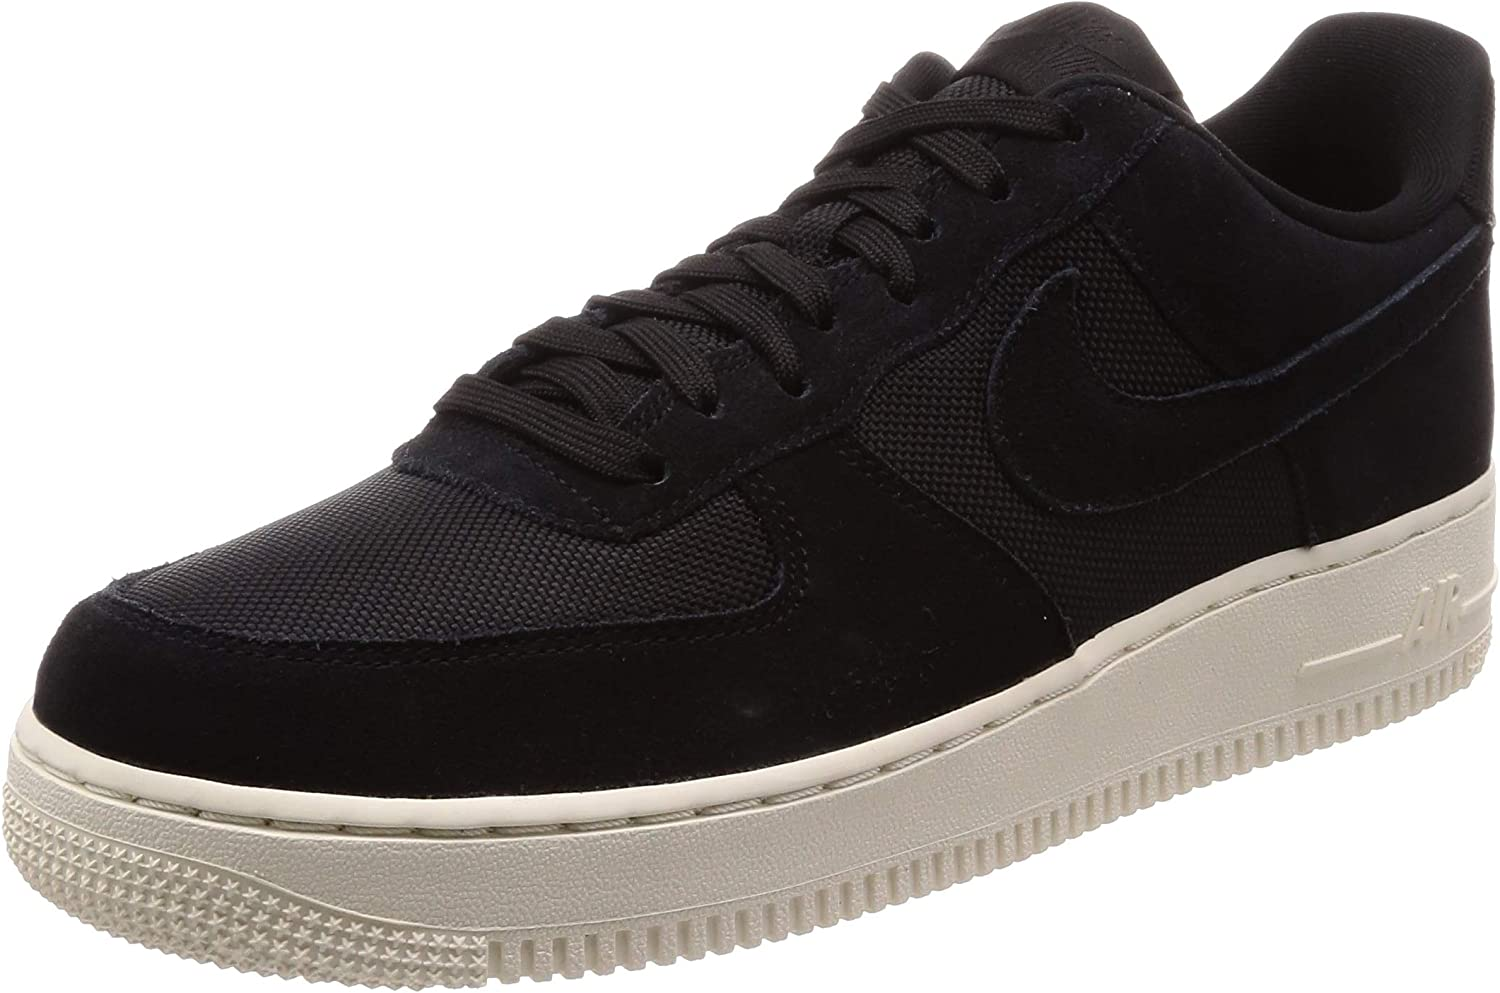 mens air force 1 '07 suede